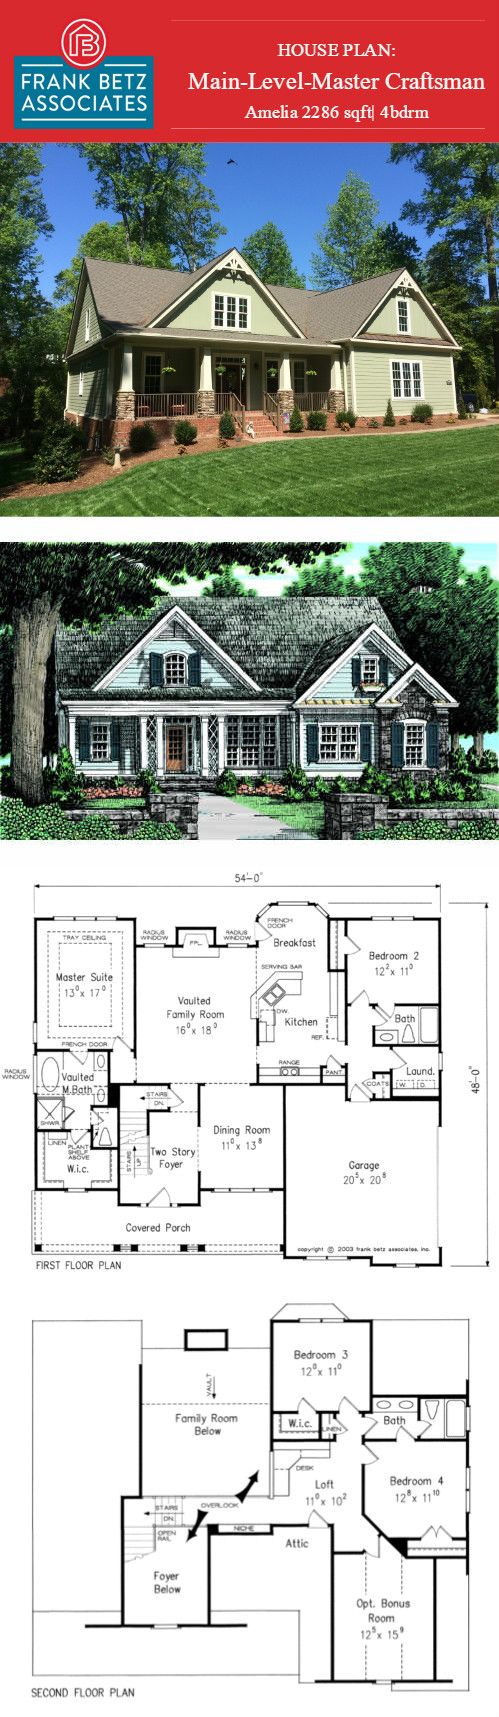 best 25 2 story homes ideas on pinterest two story homes big best 25 2 story homes ideas on pinterest two story homes big homes and square floor plans